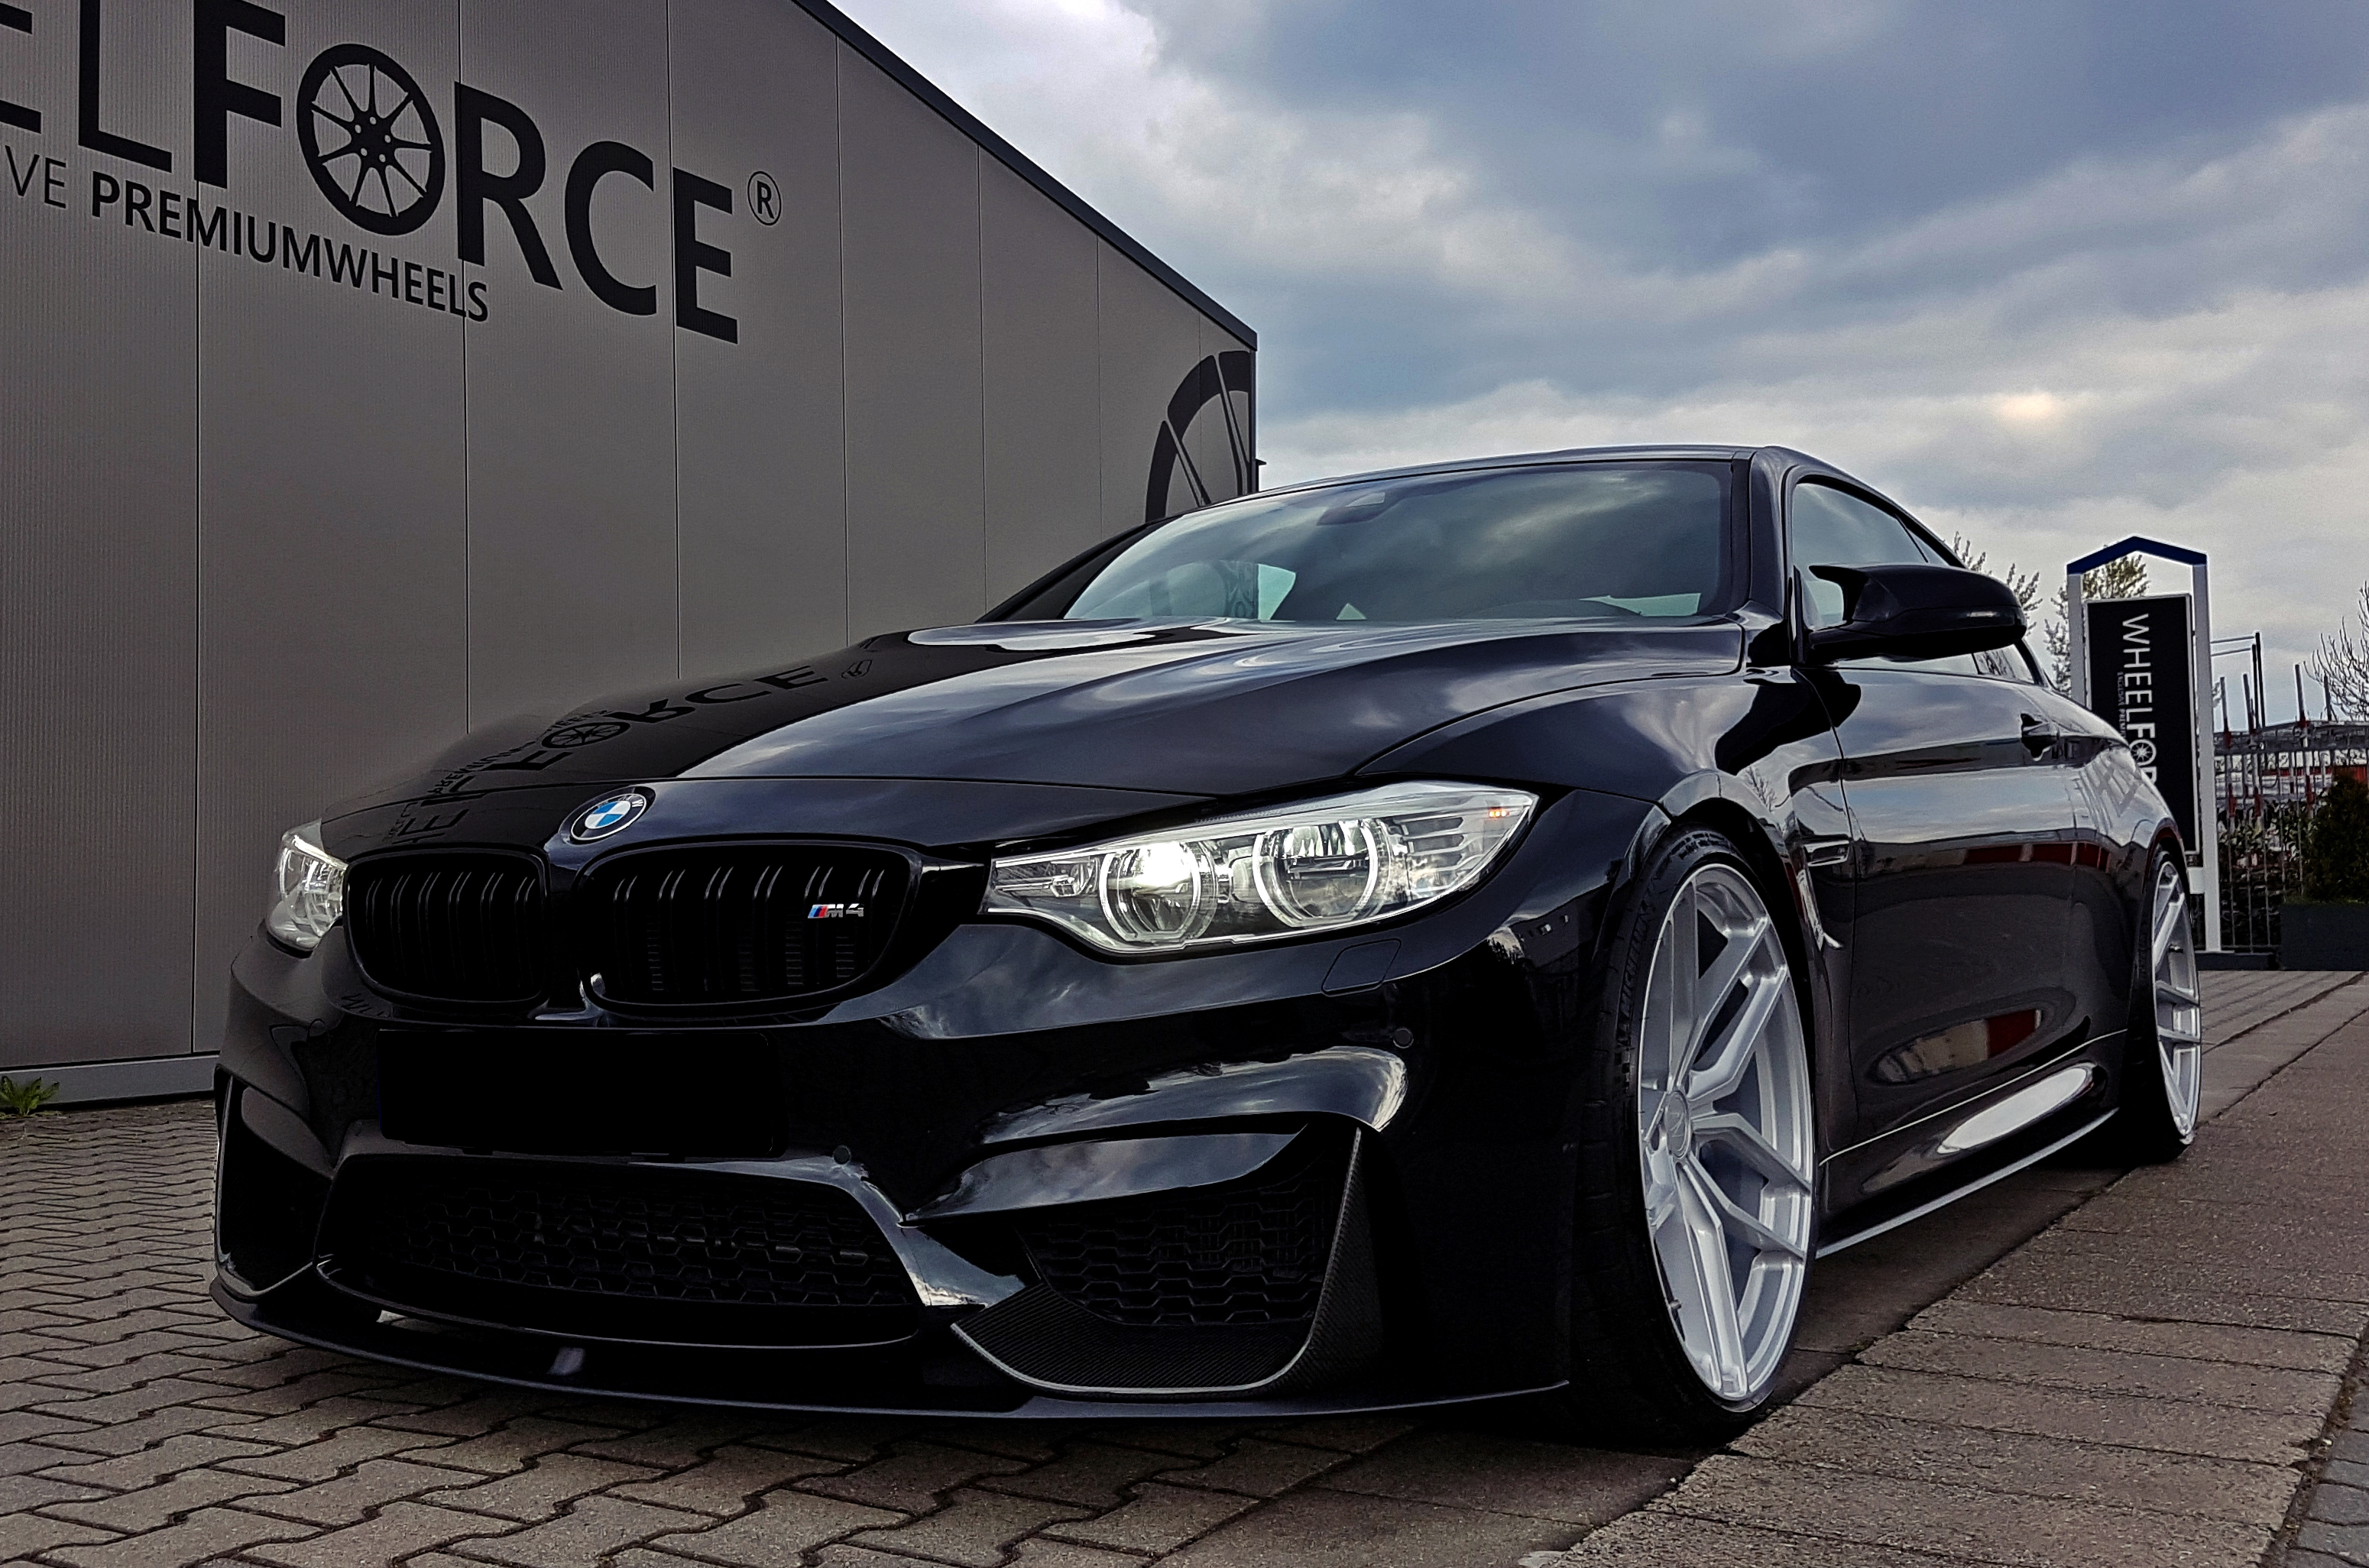 rdks bmw m4 competition kopfschmerzen reifen felgen. Black Bedroom Furniture Sets. Home Design Ideas